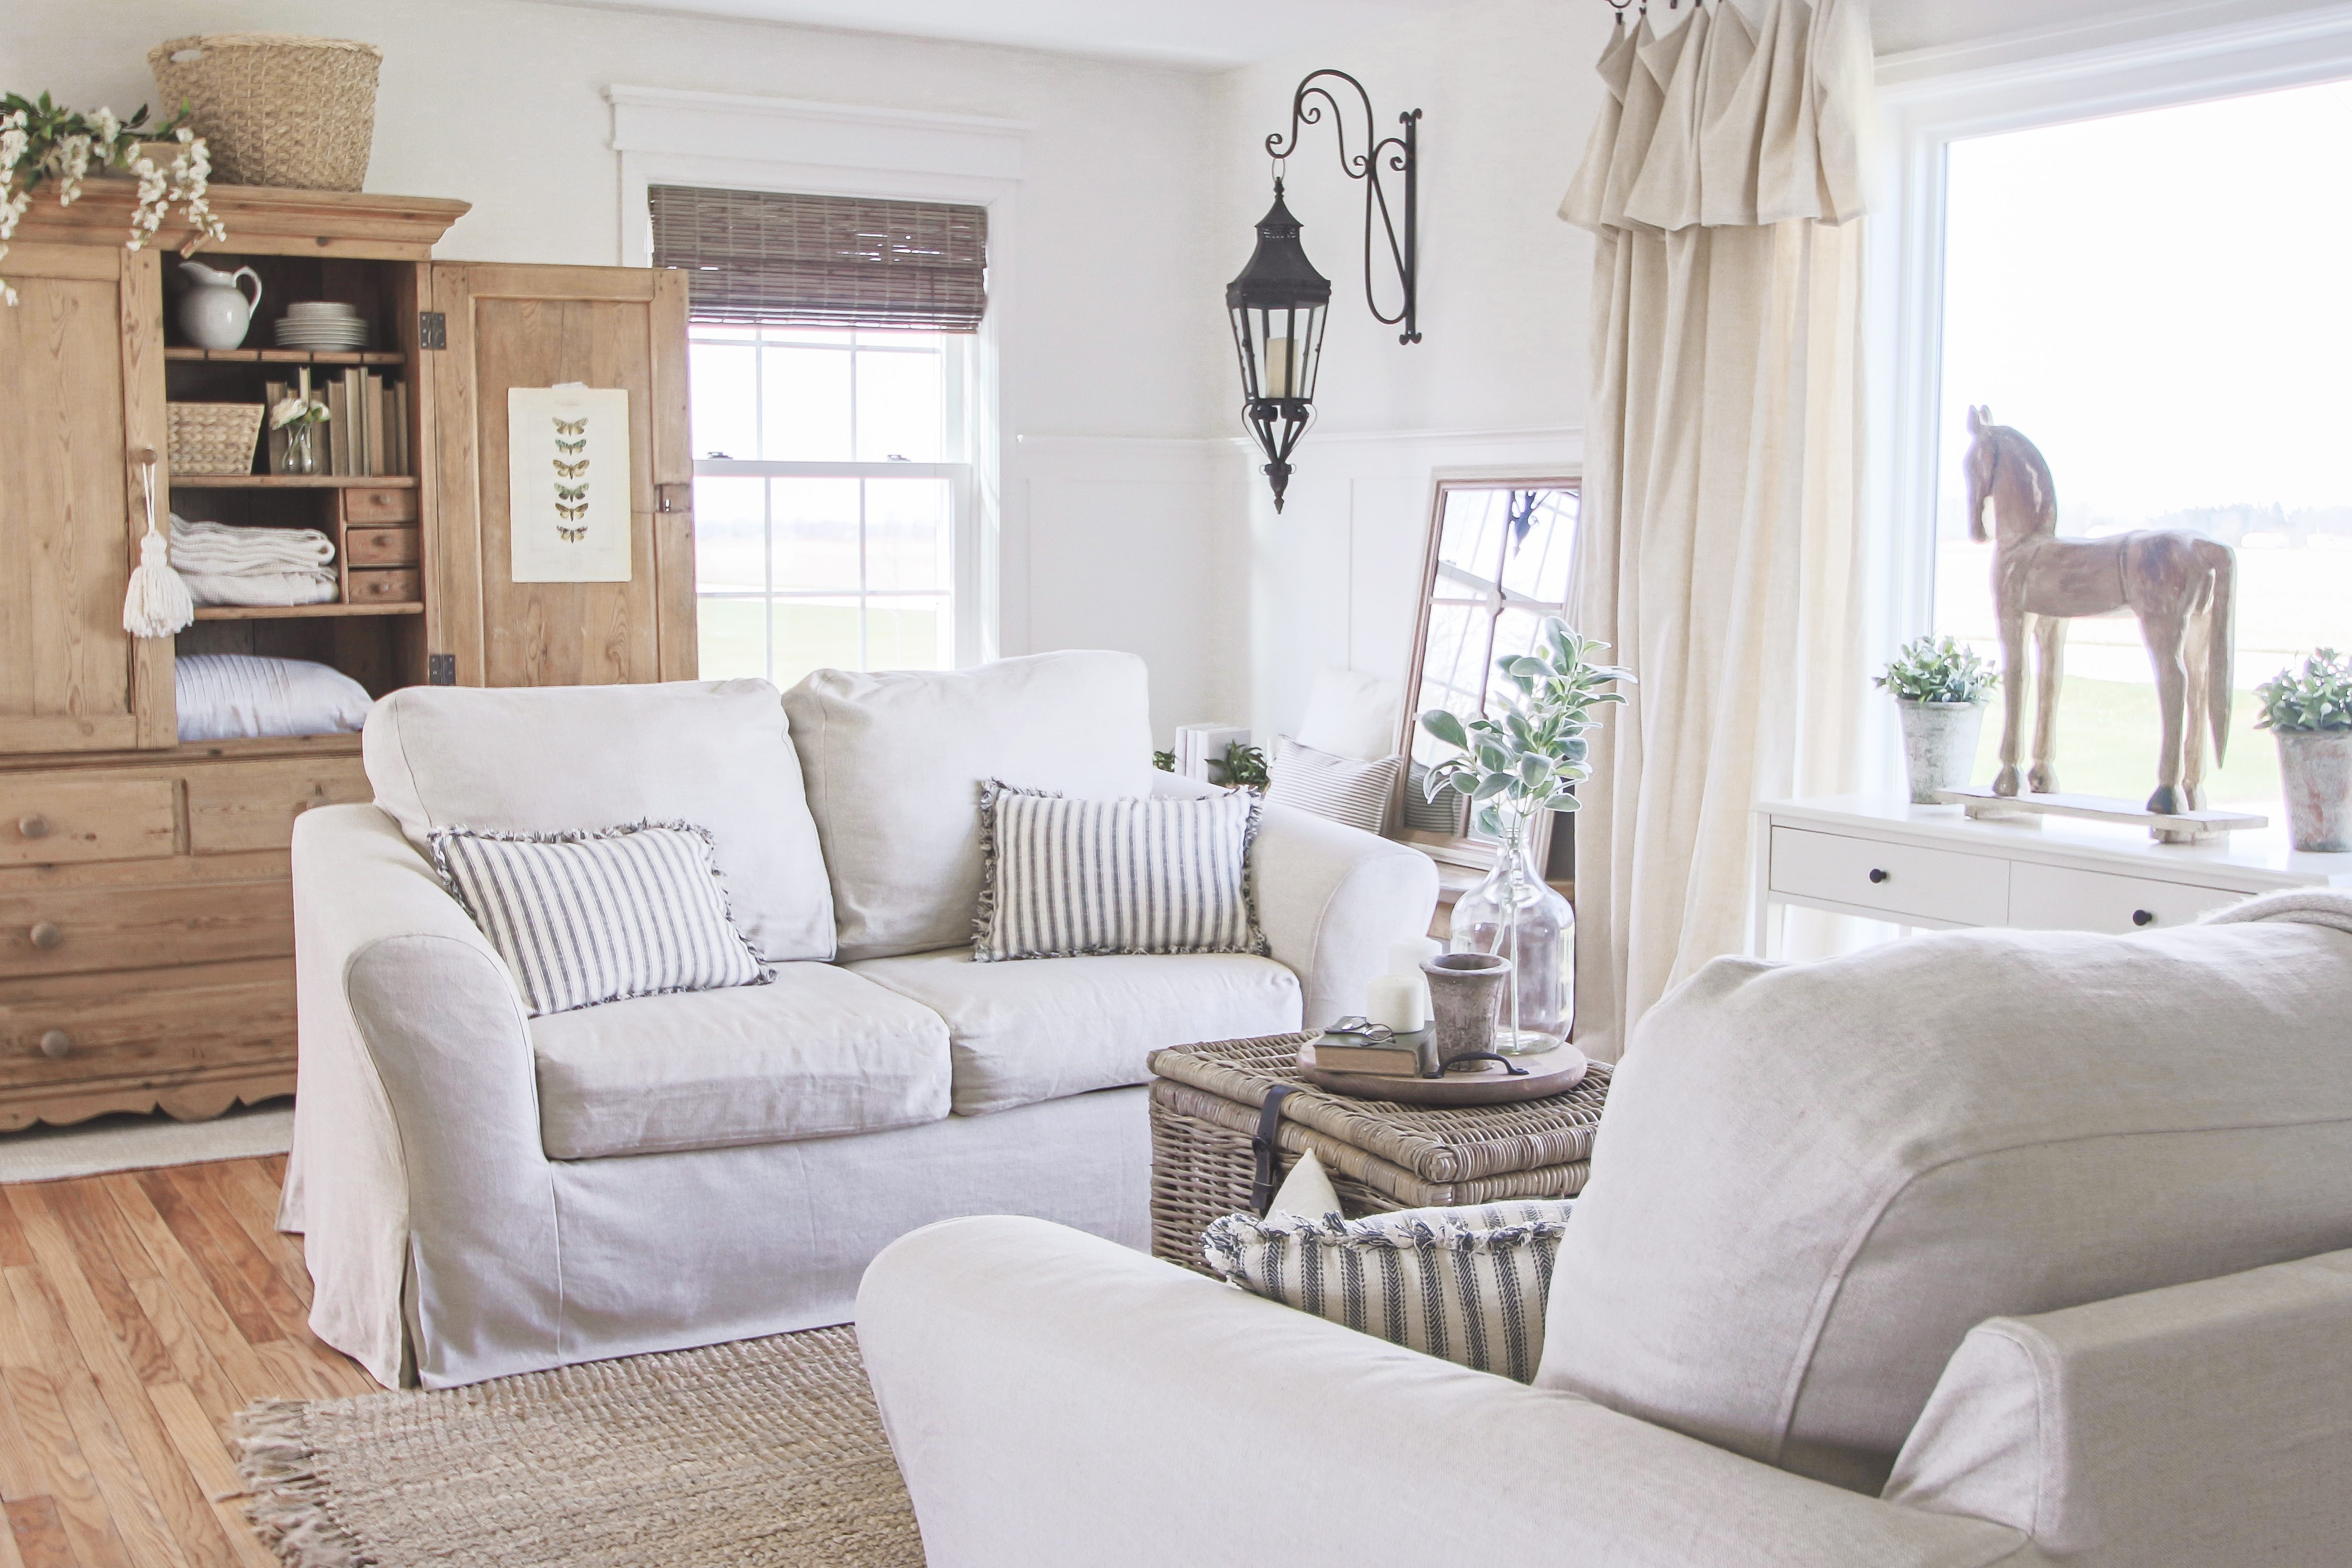 Slipcovers for Sofas with Attached Cushions – can it be done